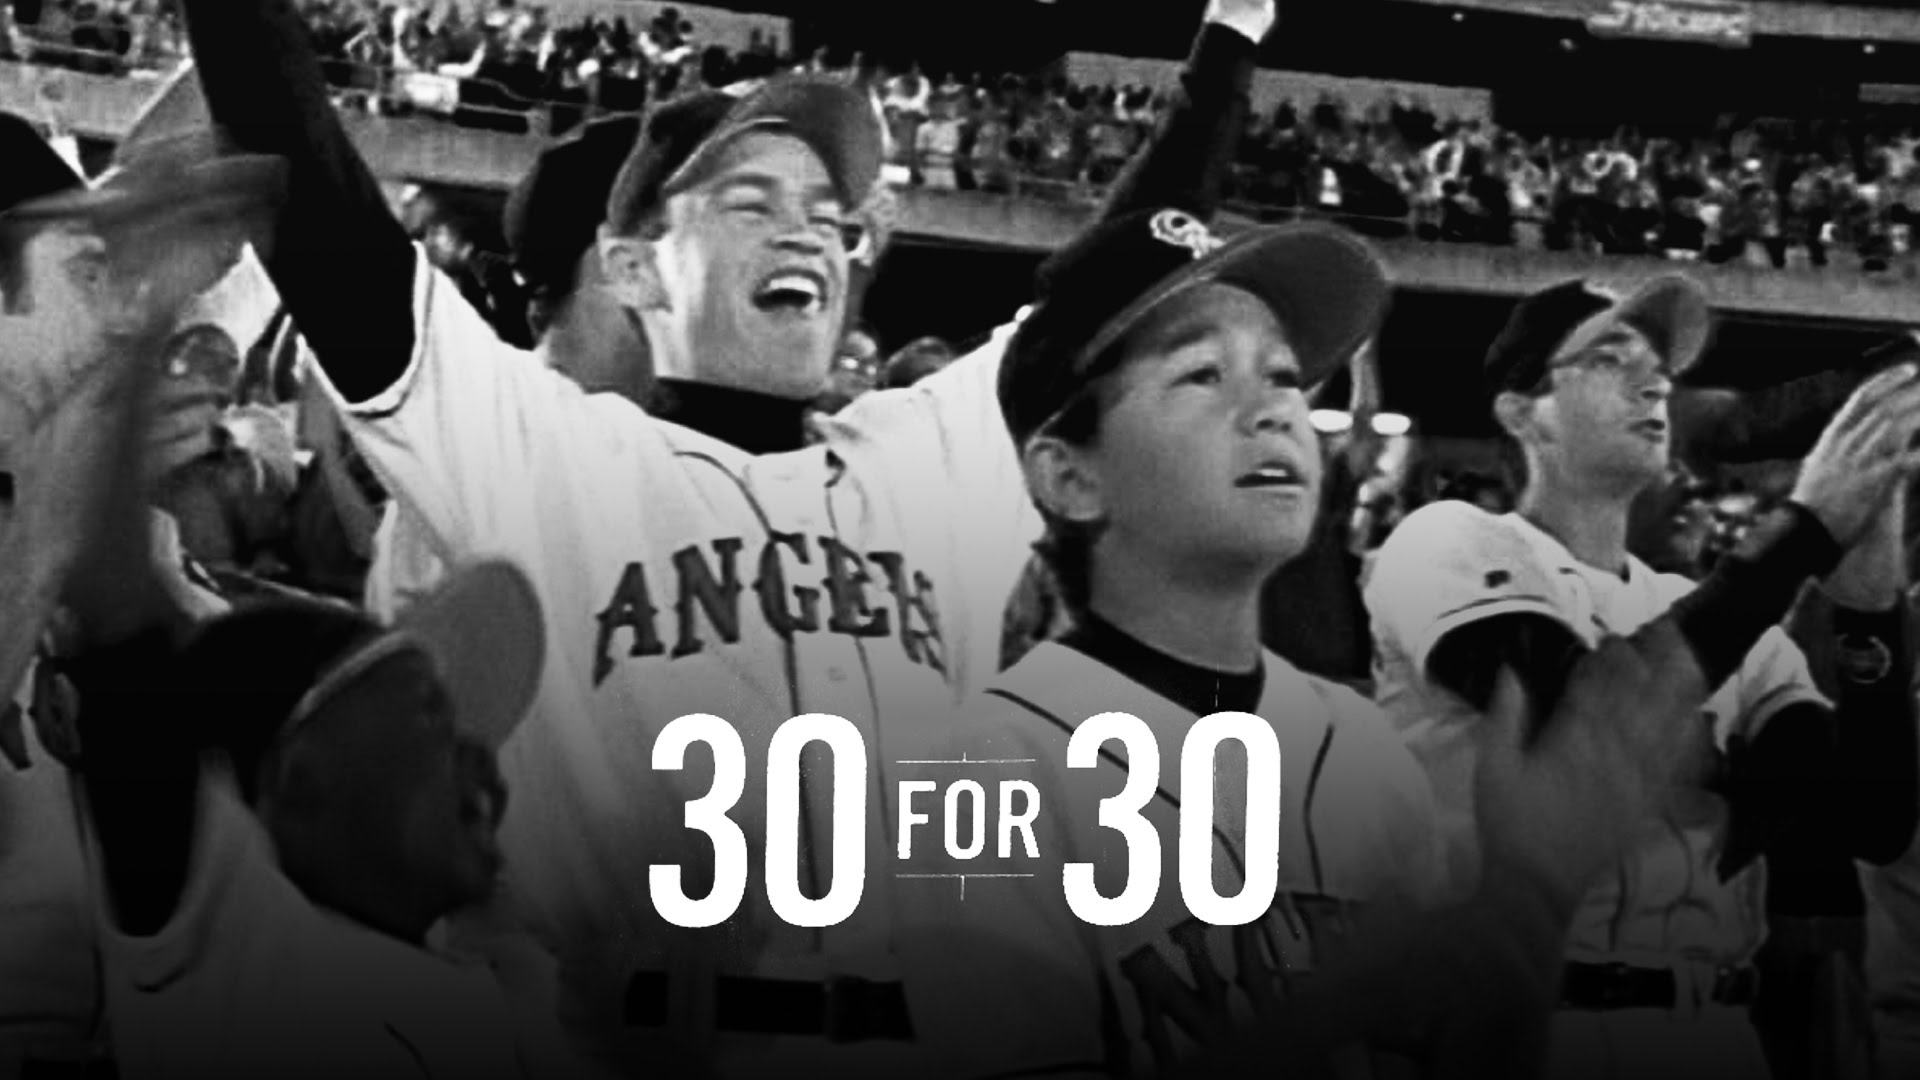 Hilarious: 30 For 30 on Angels In The Outfield